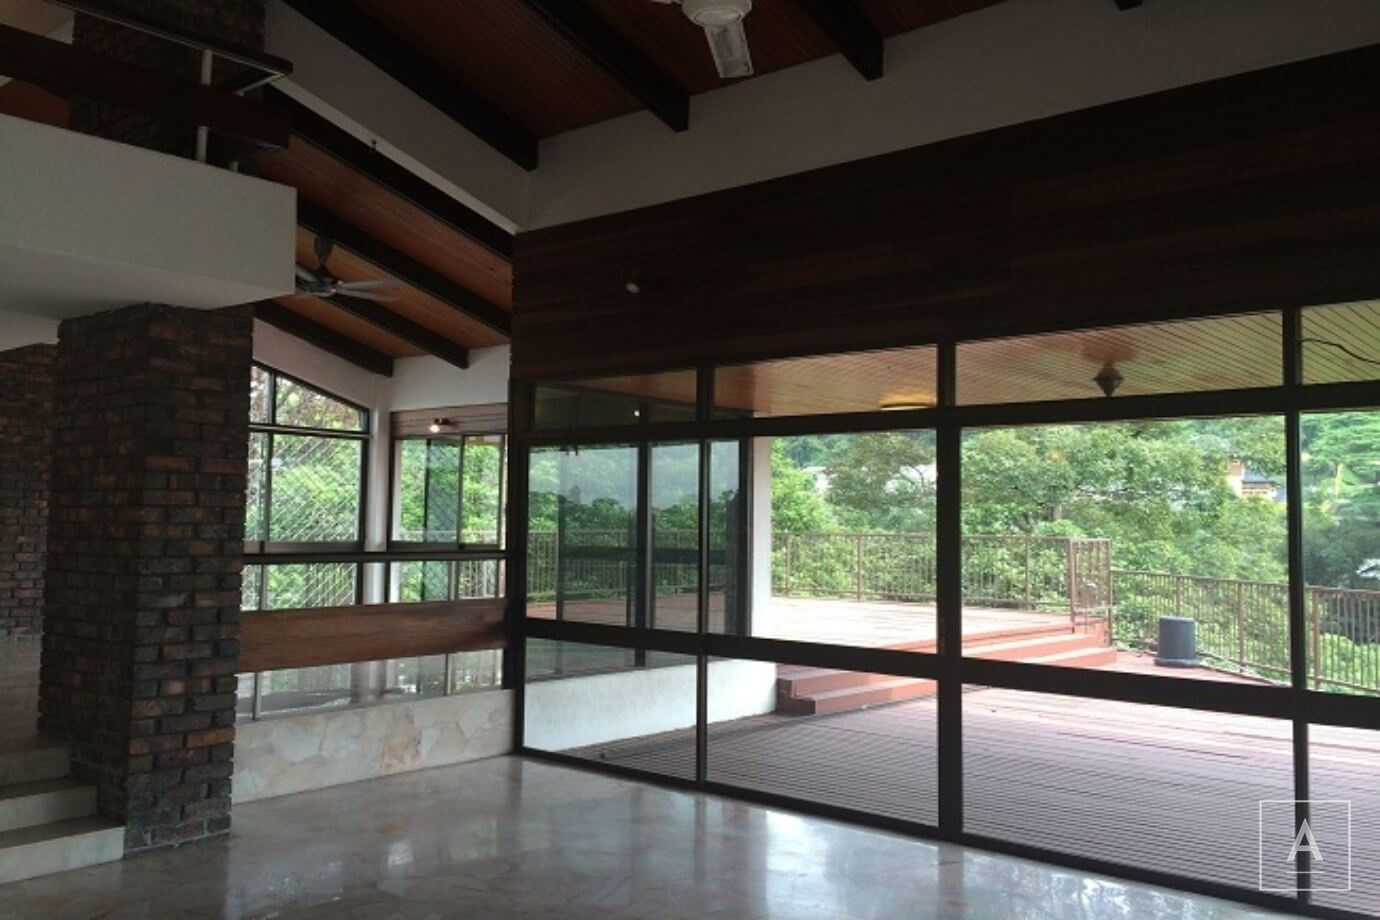 Damansara Heights,Kuala Lumpur, 5 Bedrooms Bedrooms, ,6 BathroomsBathrooms,Bungalow / Detached,For Sale,1592